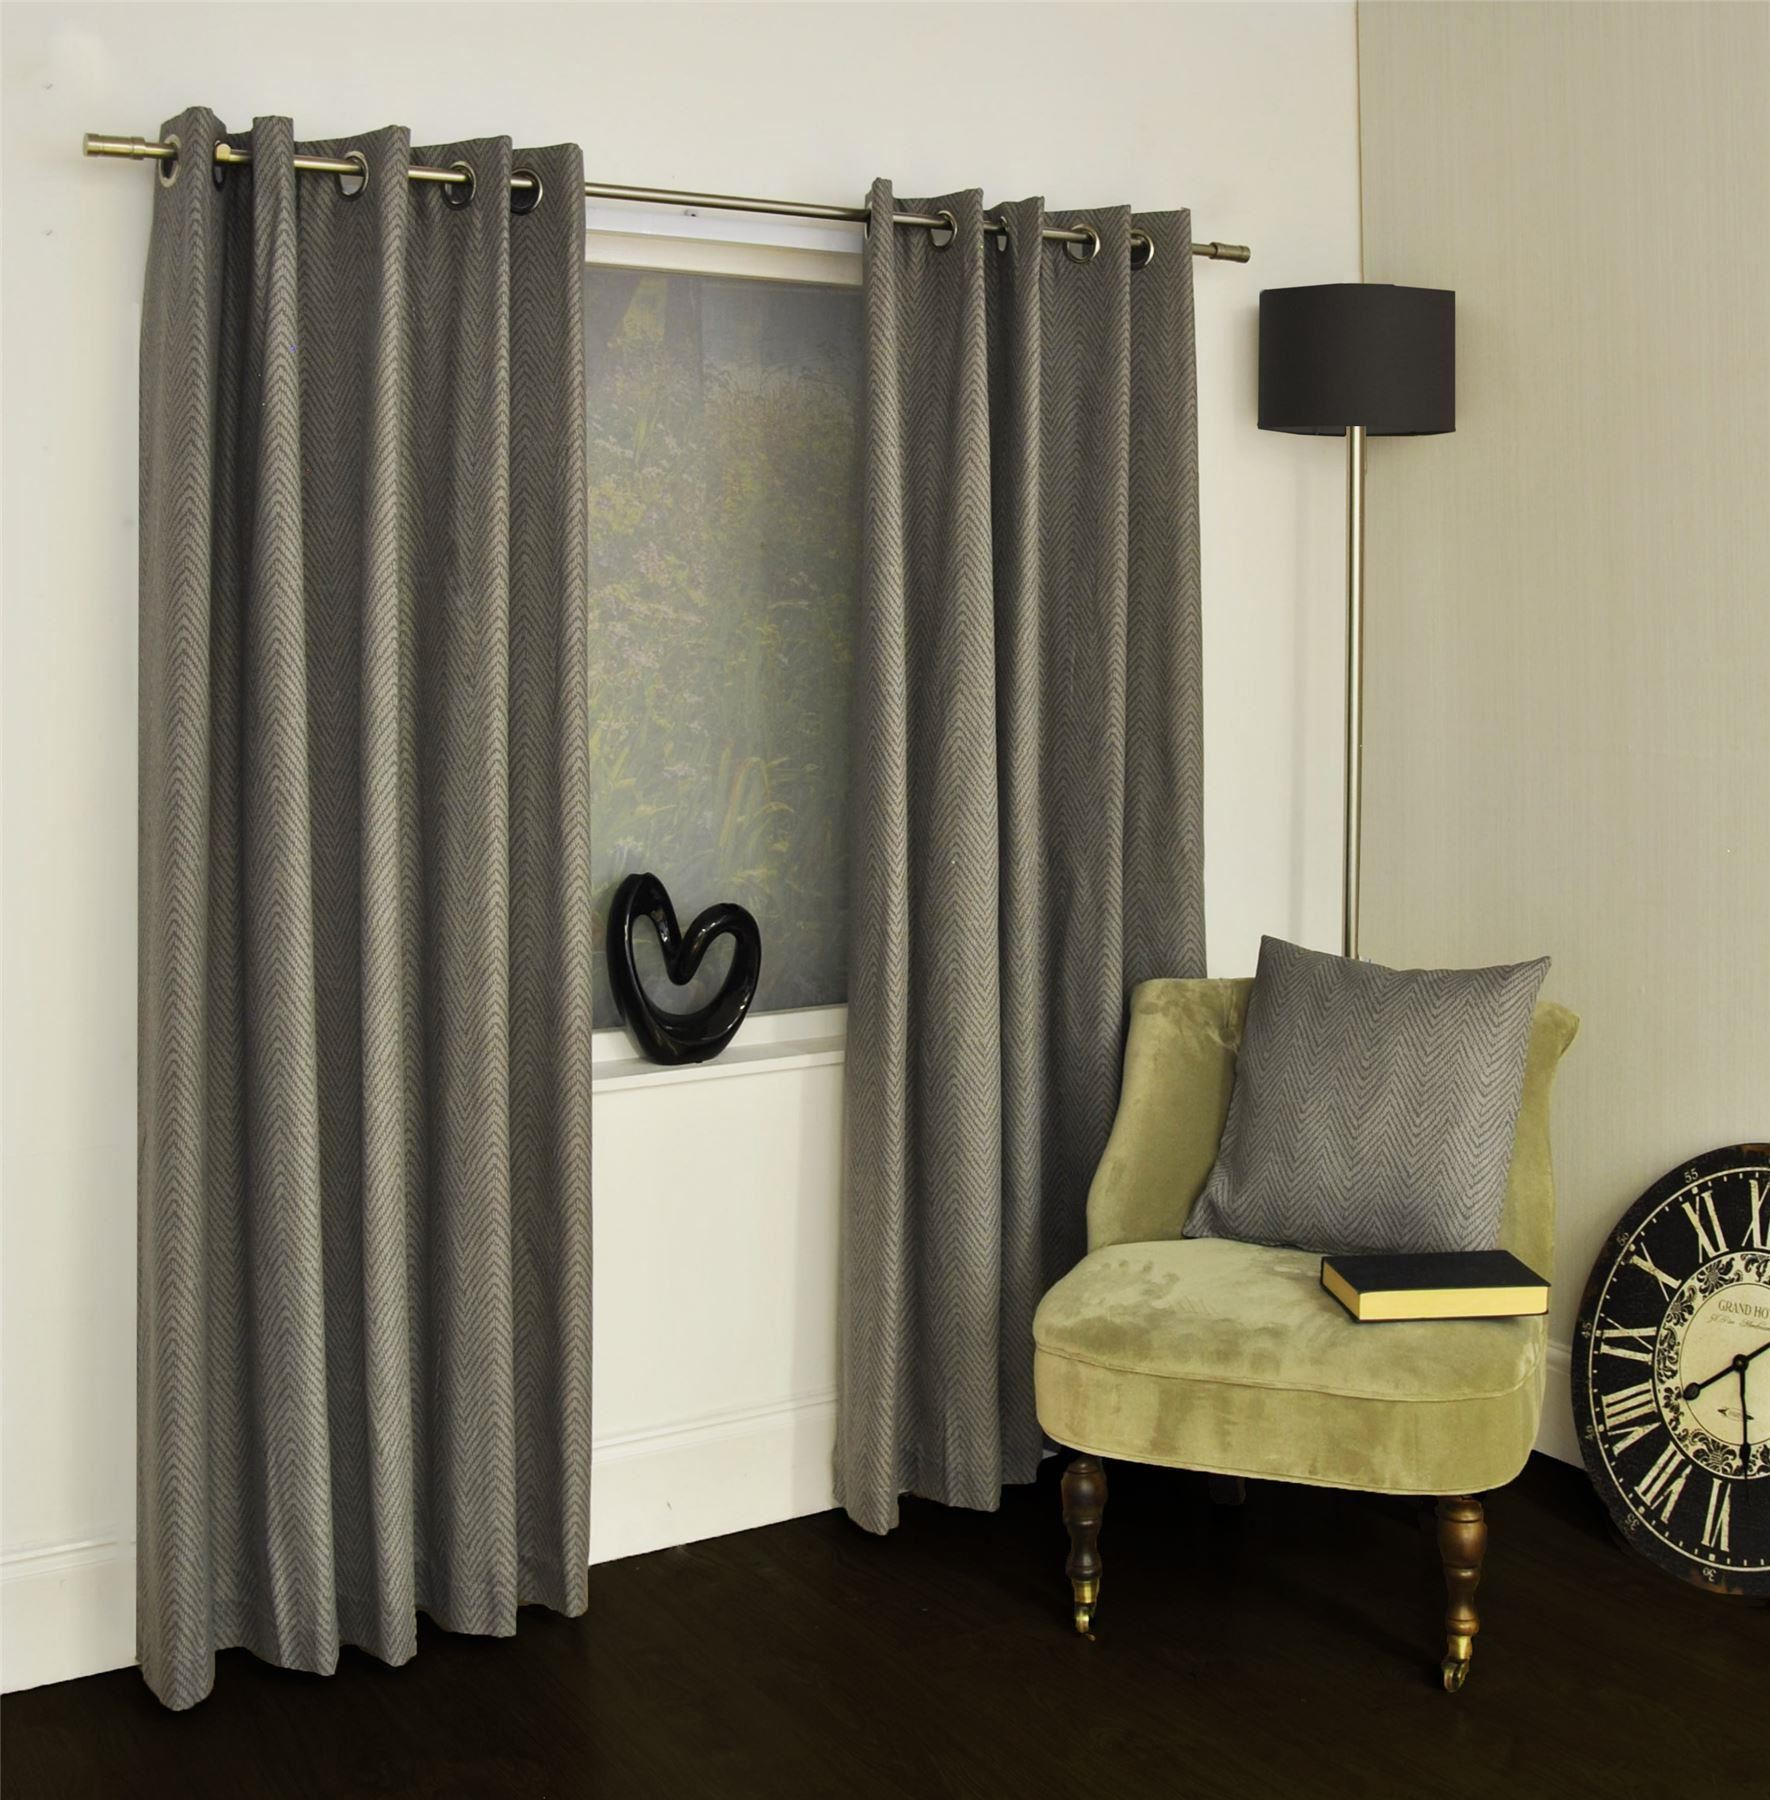 Herringbone Grey Lined Cotton Blend Ring Top Curtains Drapes 8 Sizes Ebay